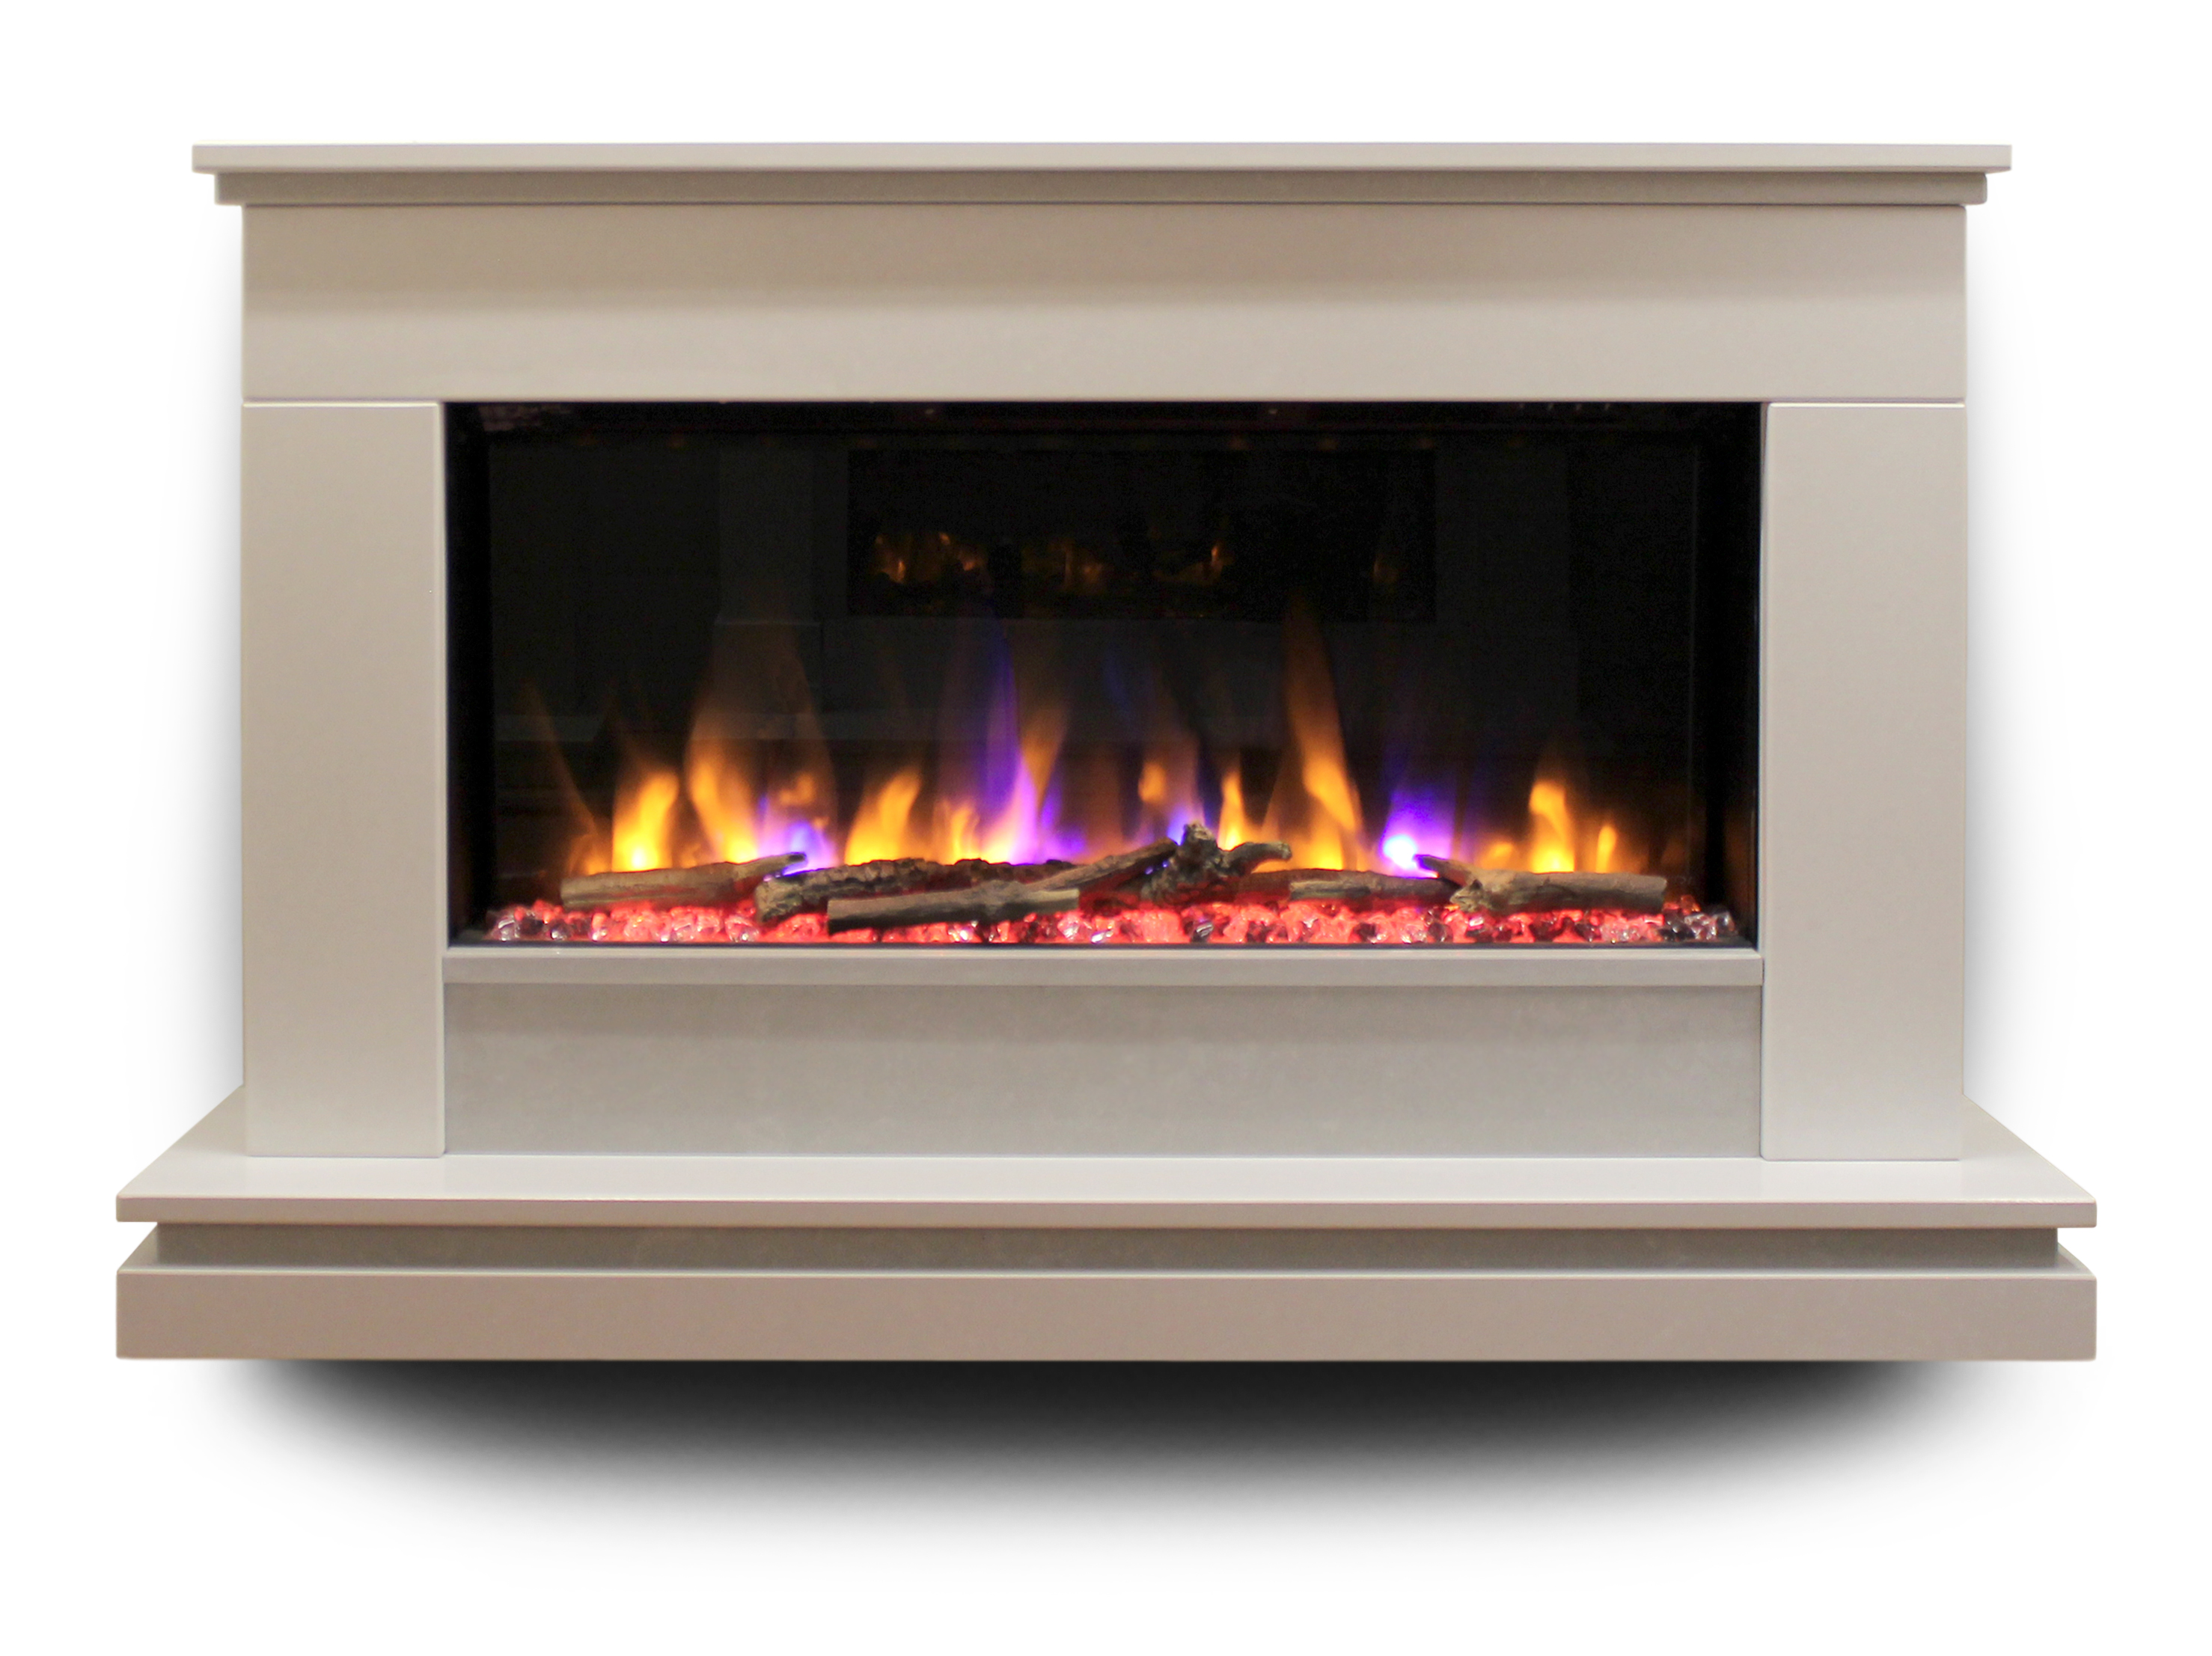 with screen fenwick hearth cabinet at arch pleasant and doors curved caurius prairie glass finest smoked fn style door elegant fireplace